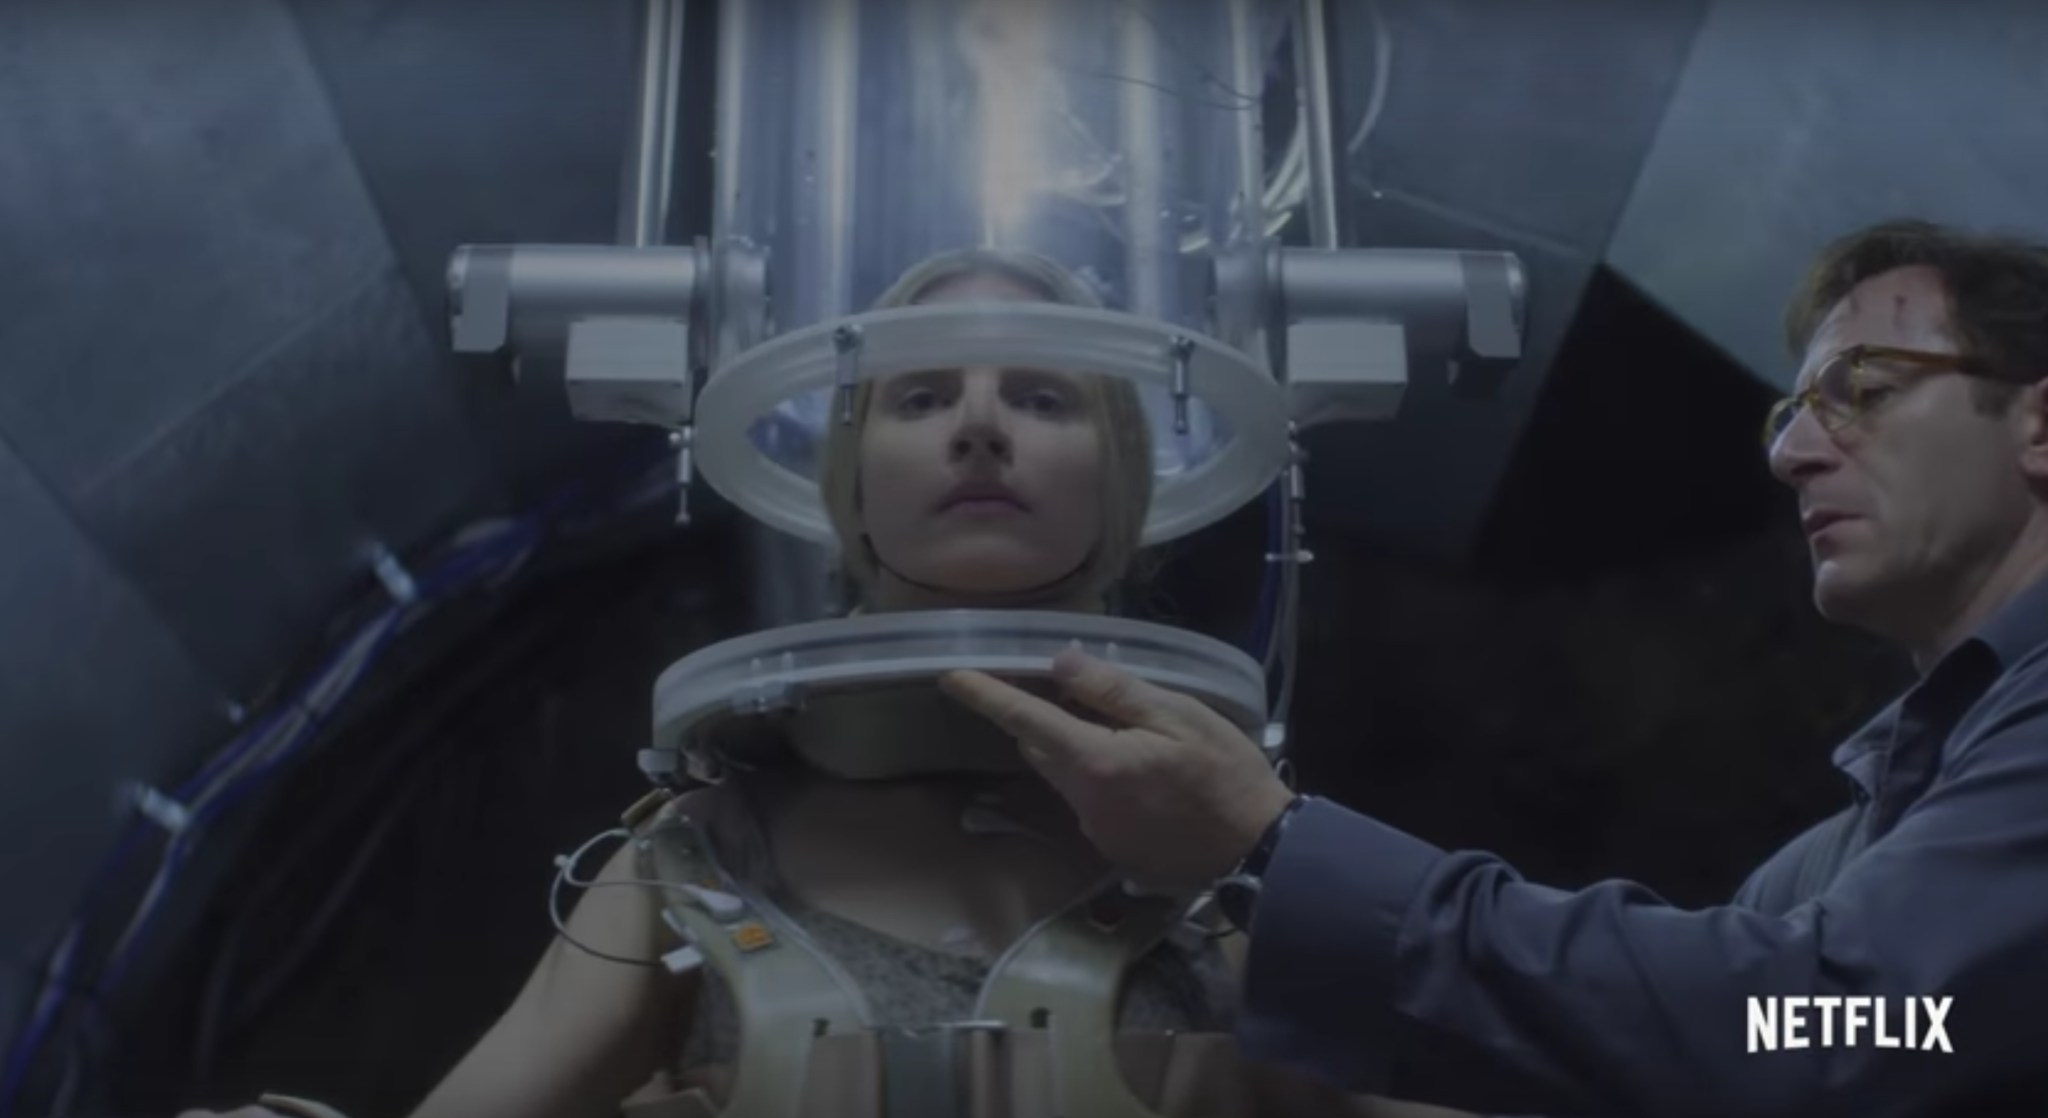 Trailer, release date revealed for 'secret' Netflix series 'The OA' - Chicago Tribune